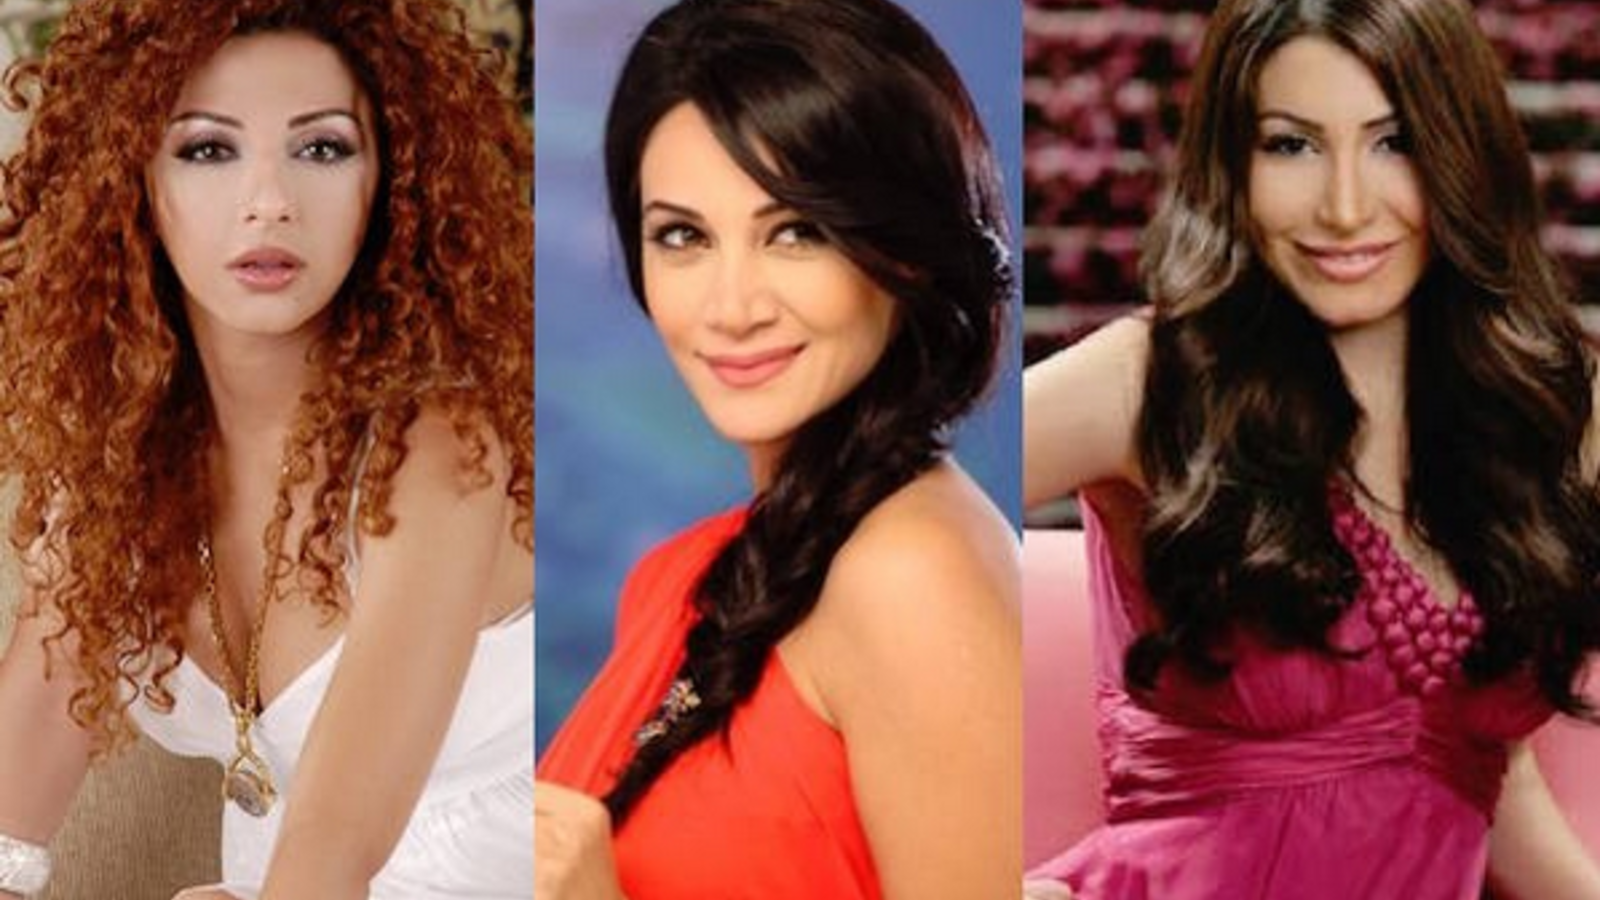 Diana Haddad, Myriam Fares and Yara will join acts such as Kadim Al Saher and Christina Aguilera. (Photo composite courtesy of Morocco World News)